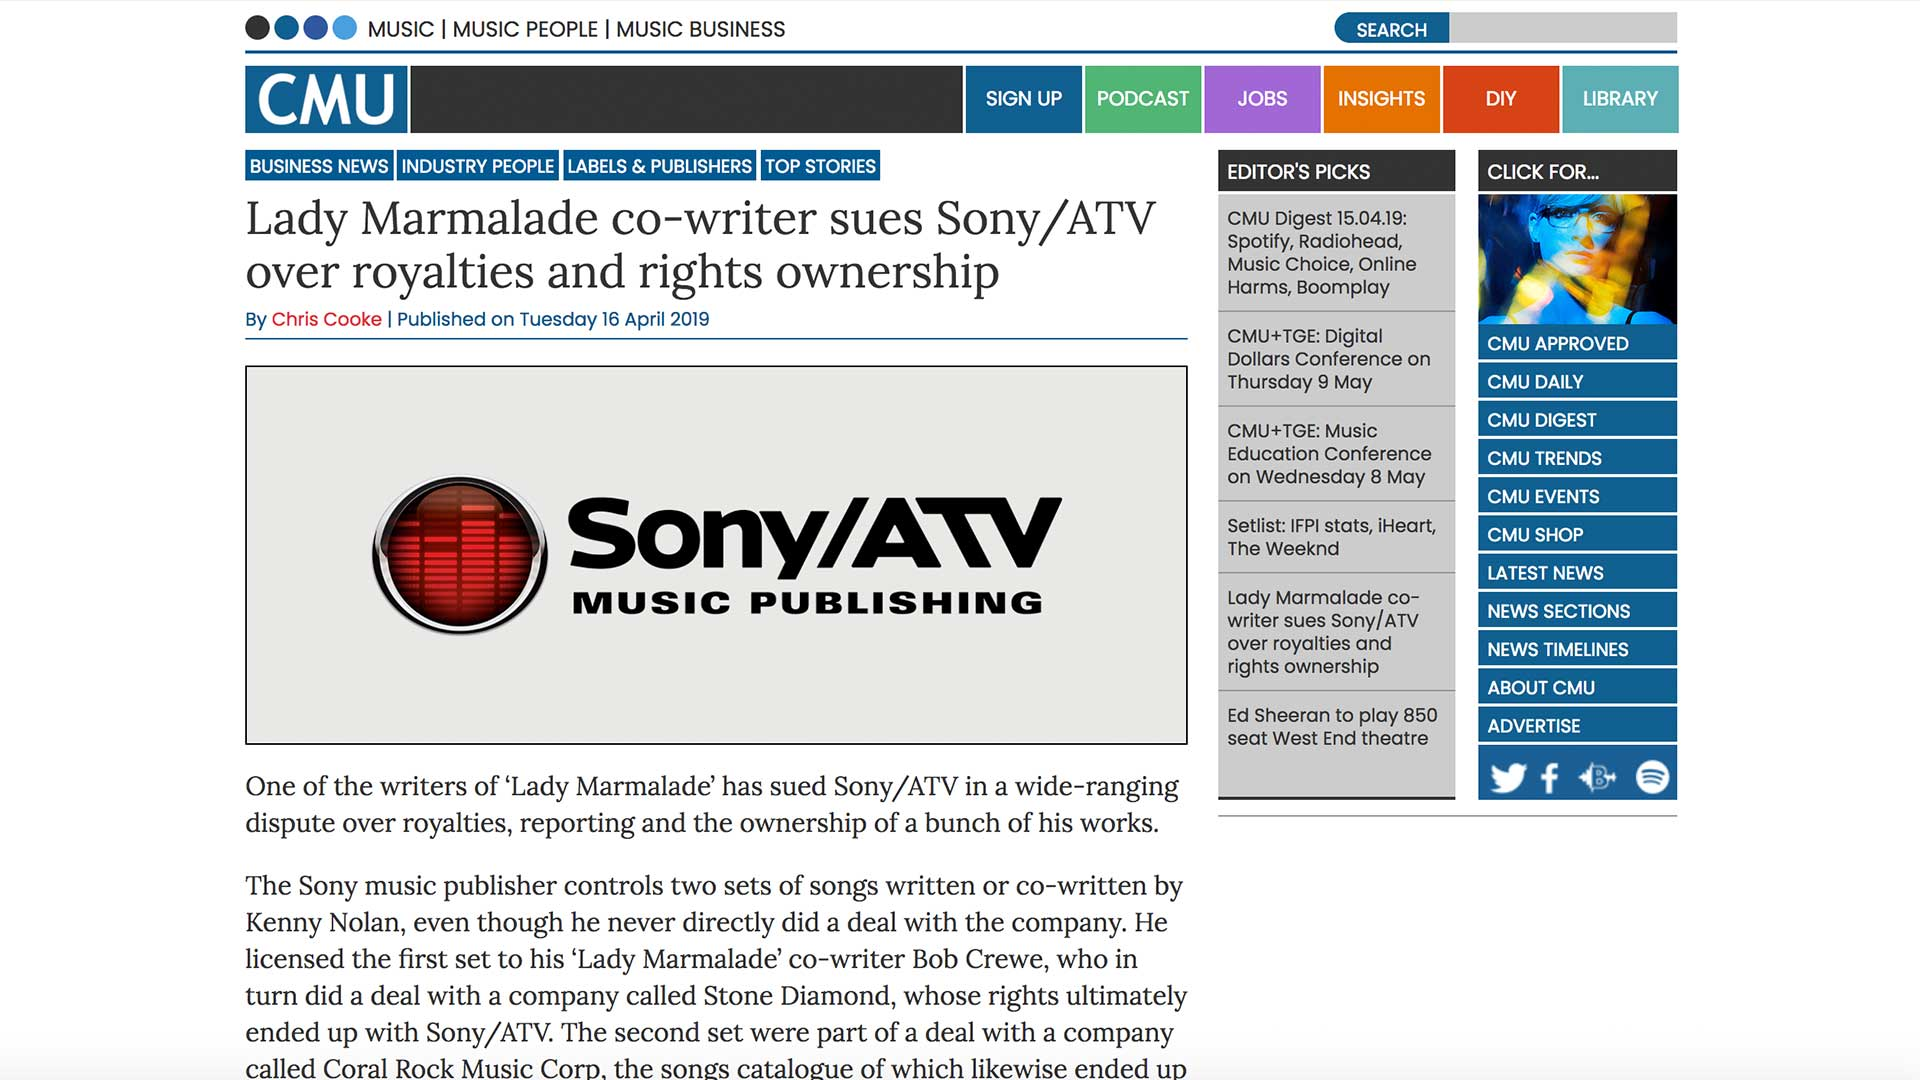 Fairness Rocks News Lady Marmalade co-writer sues Sony/ATV over royalties and rights ownership